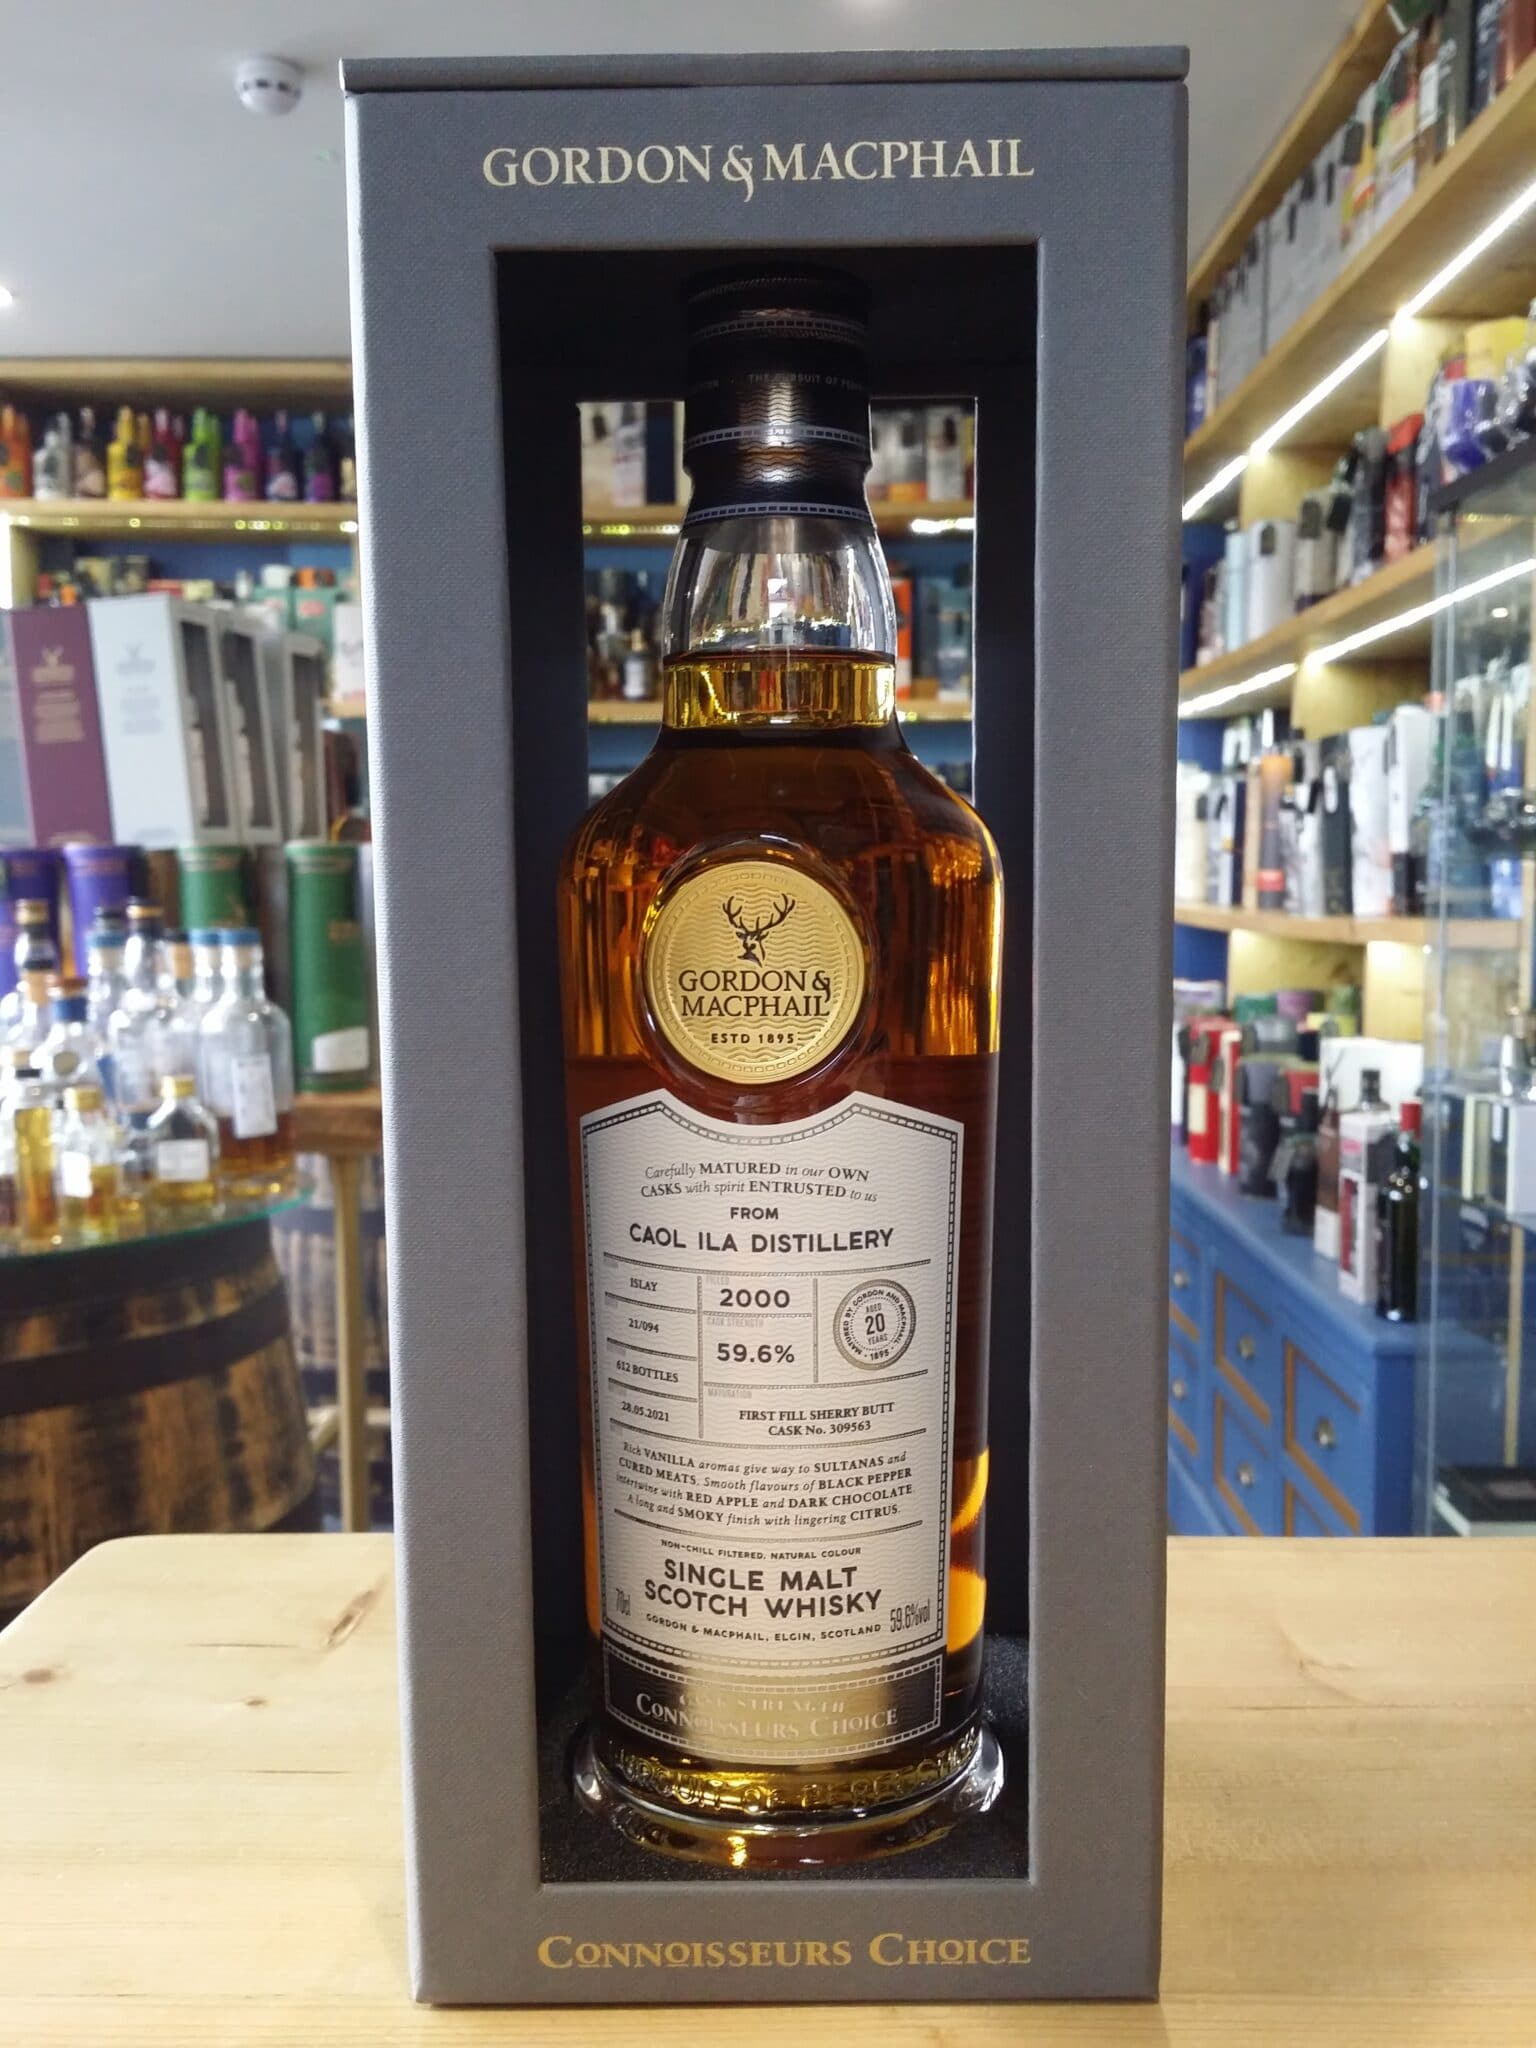 Gordon and MacPhail Connoisseurs Choice Linkwood 1994 Aged 26 Years 52.2% 70cl